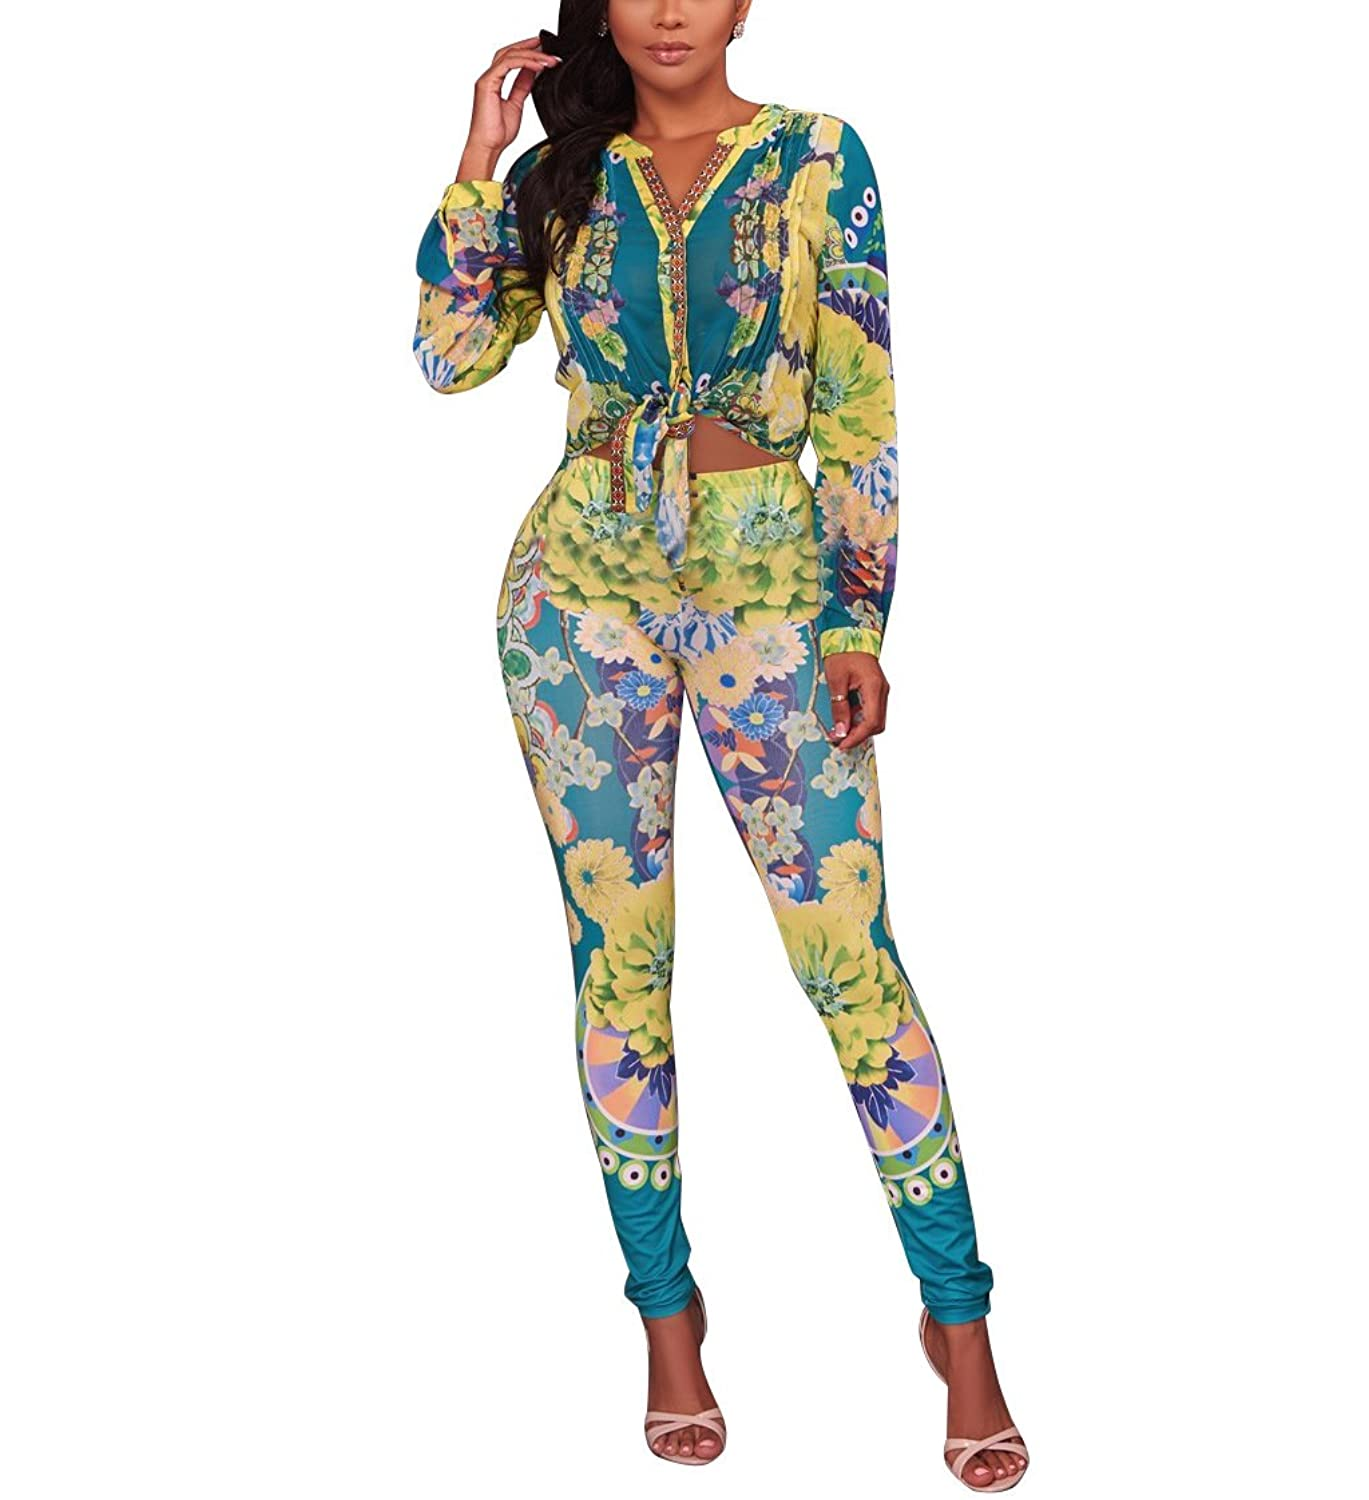 f3bc5e20c22 Wancy Womens 2 Piece Outfits Floral Print Long Sleeve V Neck Tops + Long  Pants Bodycon Jumpsuits Set